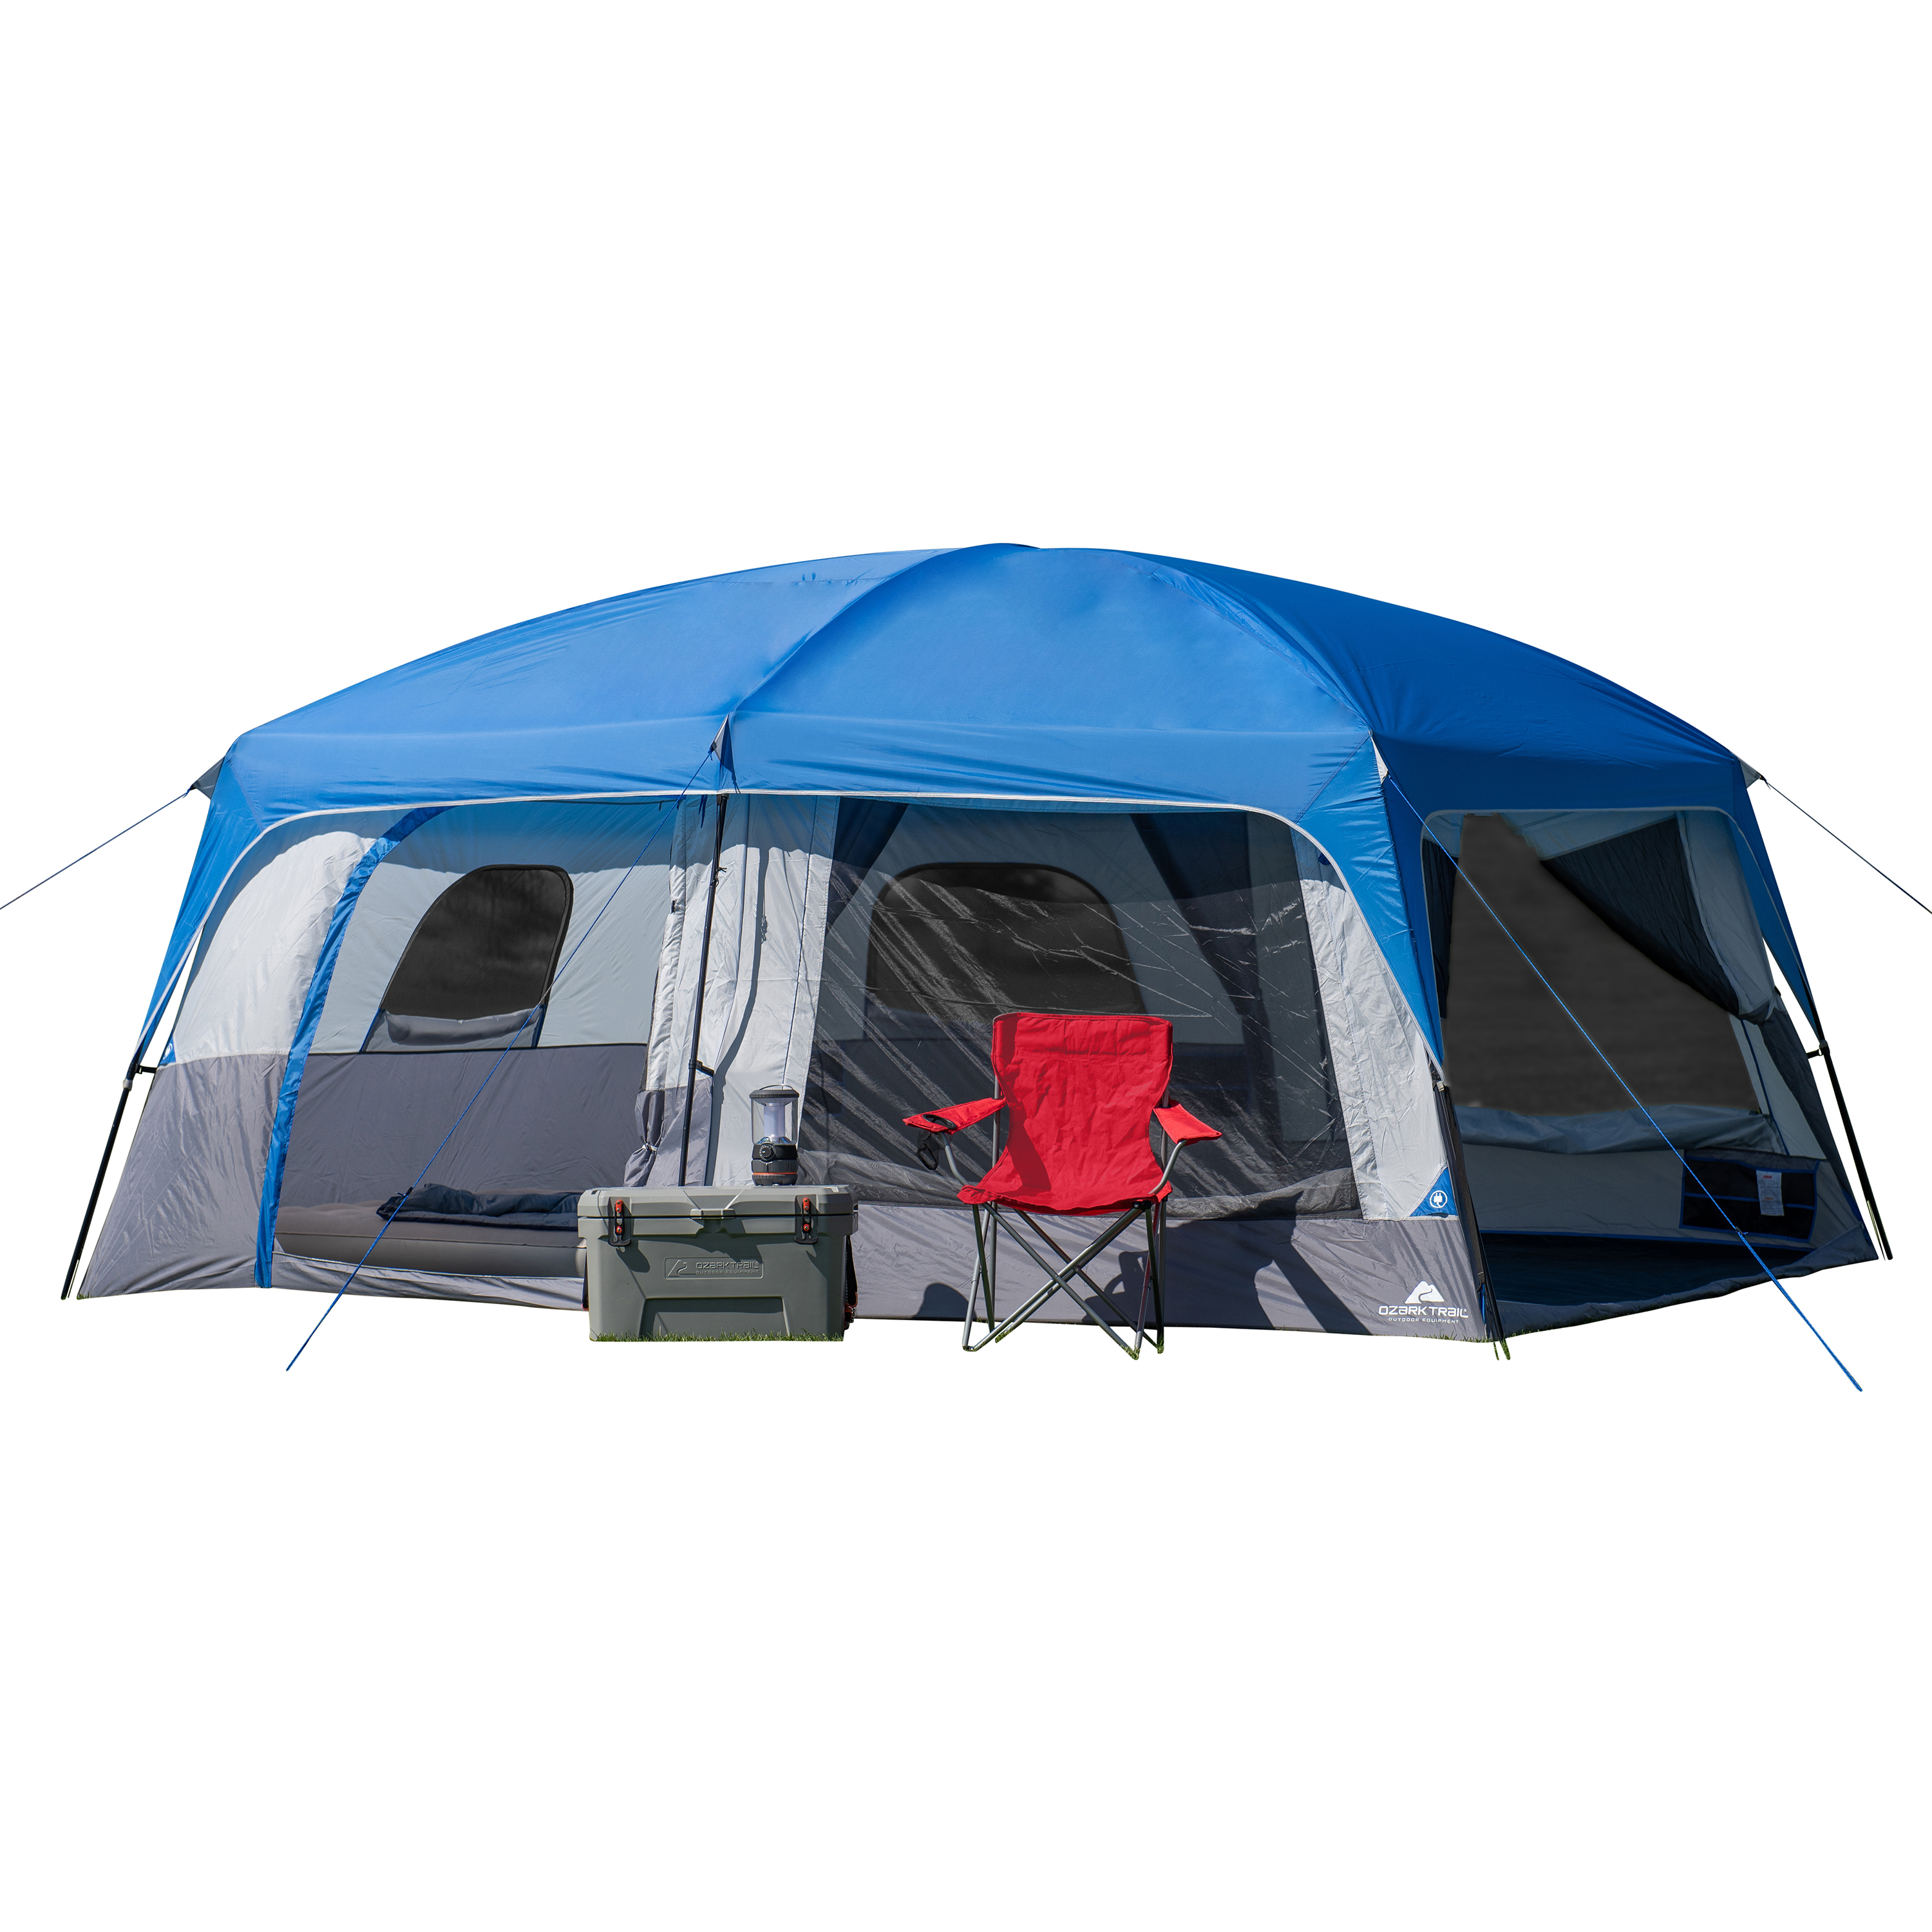 Details about Ozark Trail Hazel Creek 14 Person Family Cabin Tent Portable  Outdoor Camping W